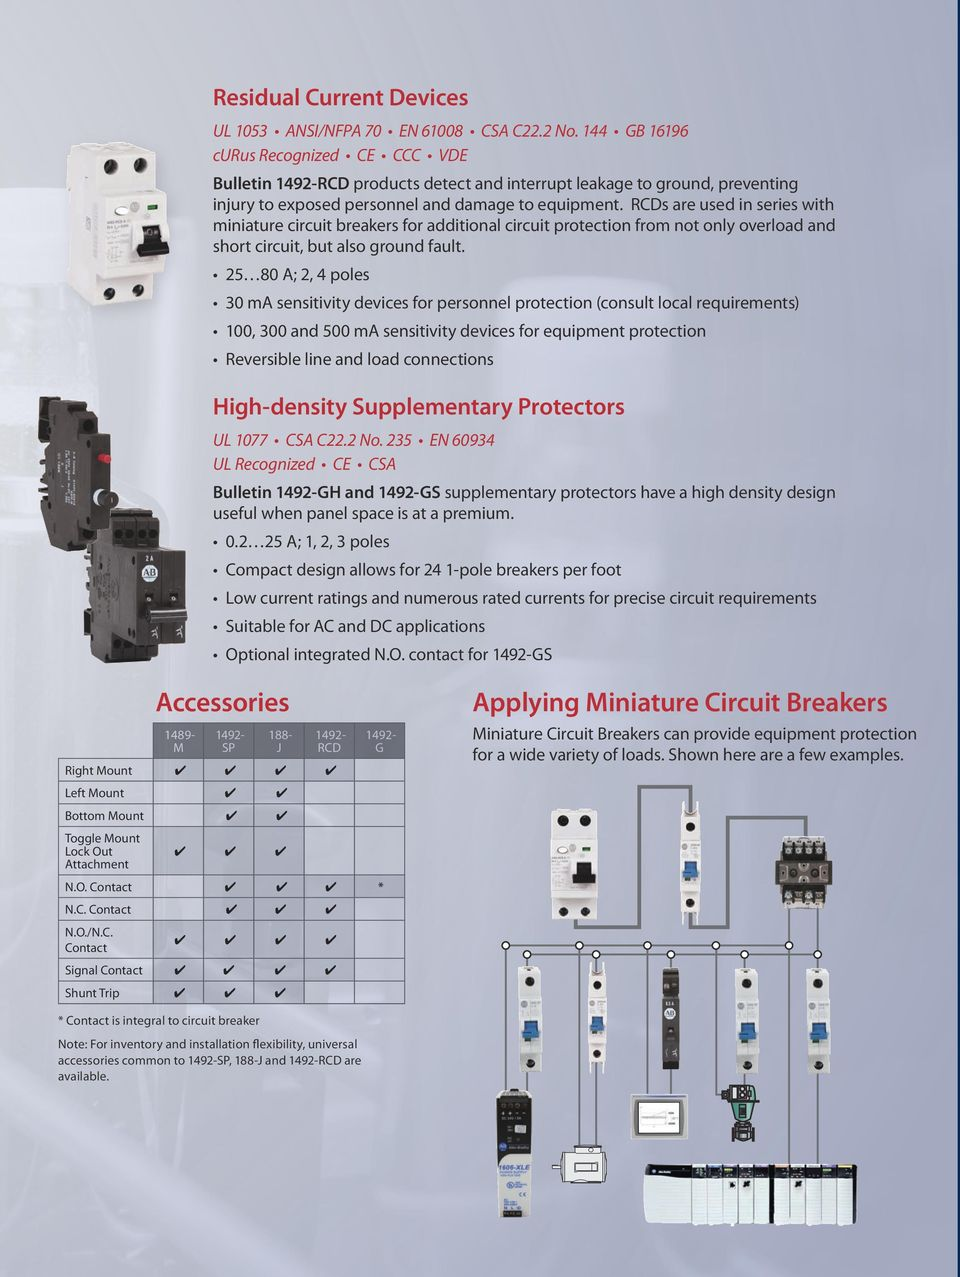 RCDs are used in series with miniature circuit breakers for additional circuit protection from not only overload and short circuit, but also ground fault.